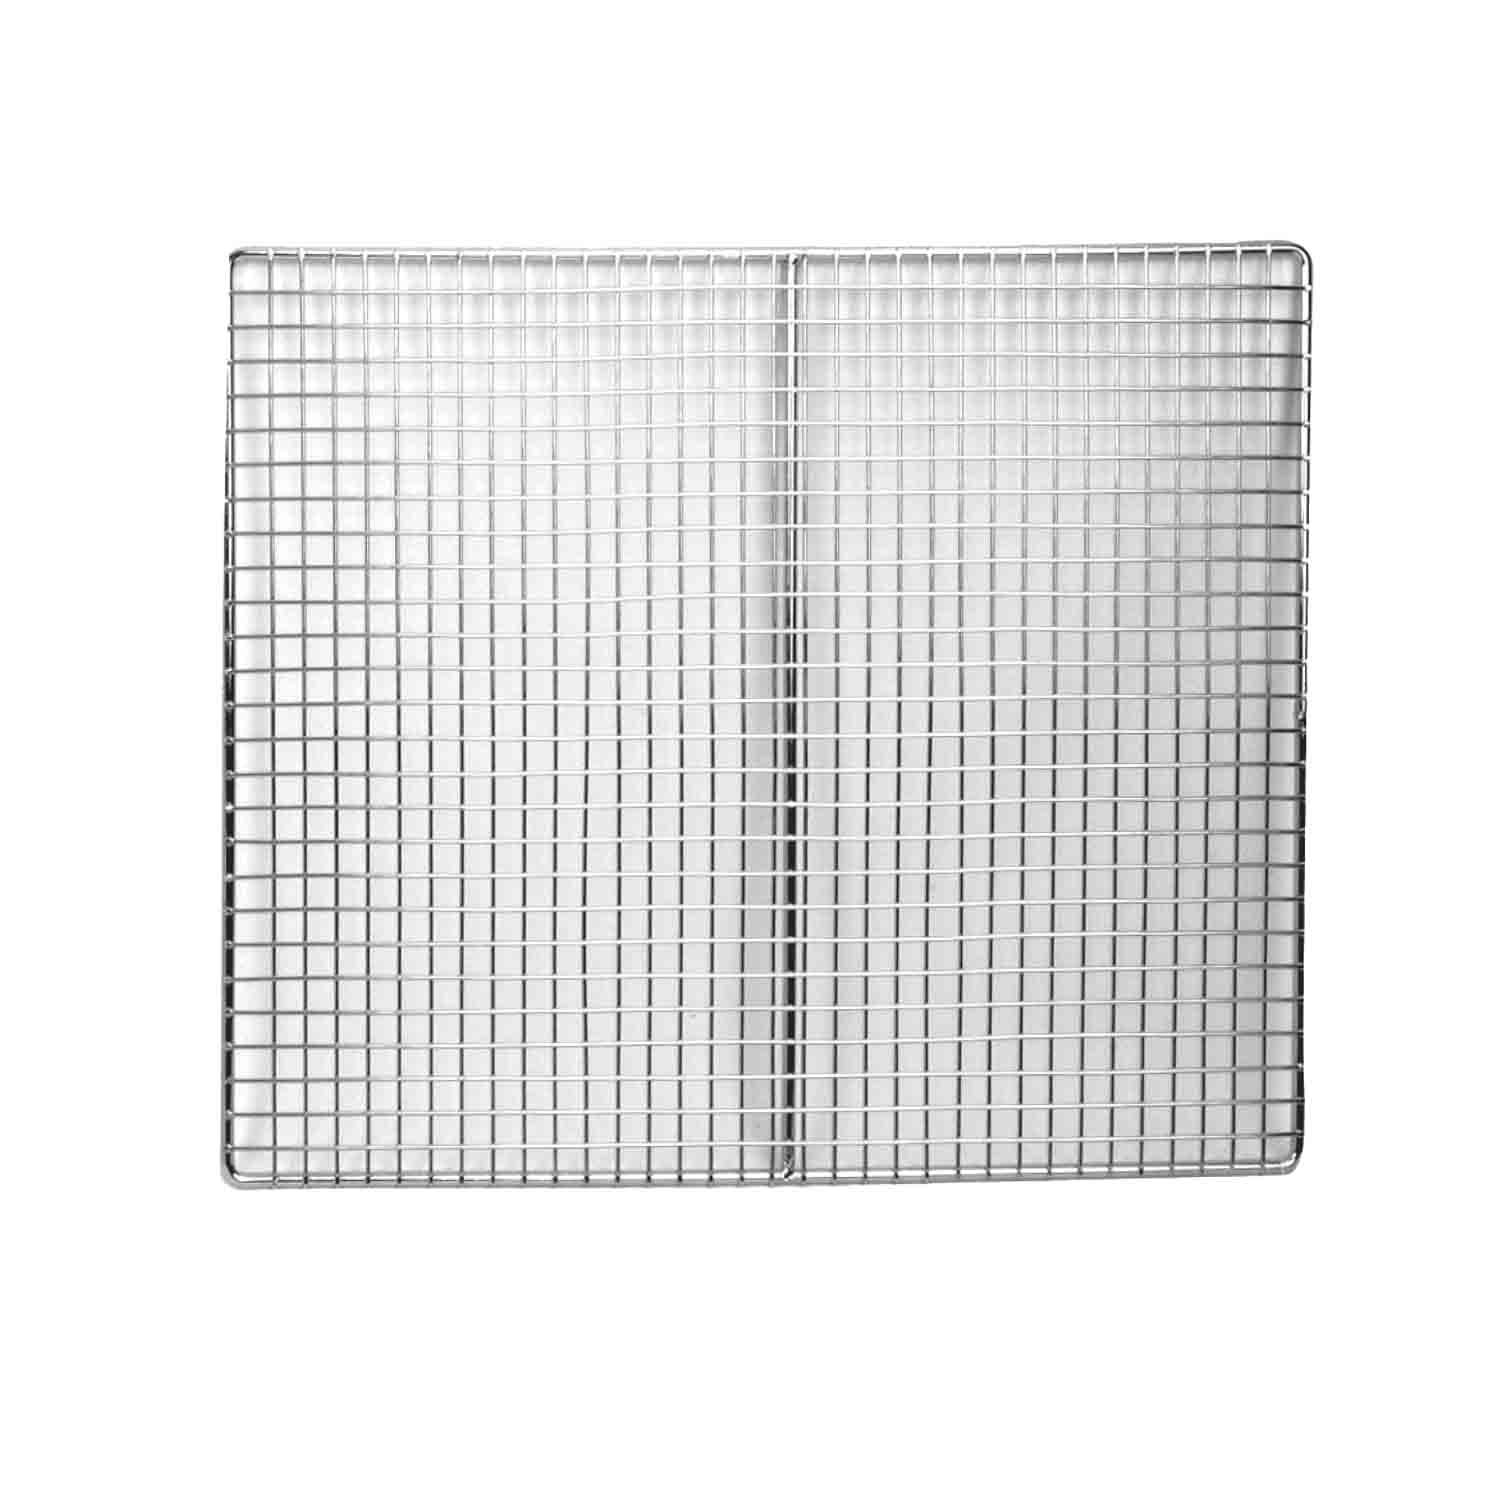 Excellante 11.38 by 14.63-Inch Fryer Screen SLRACK1114